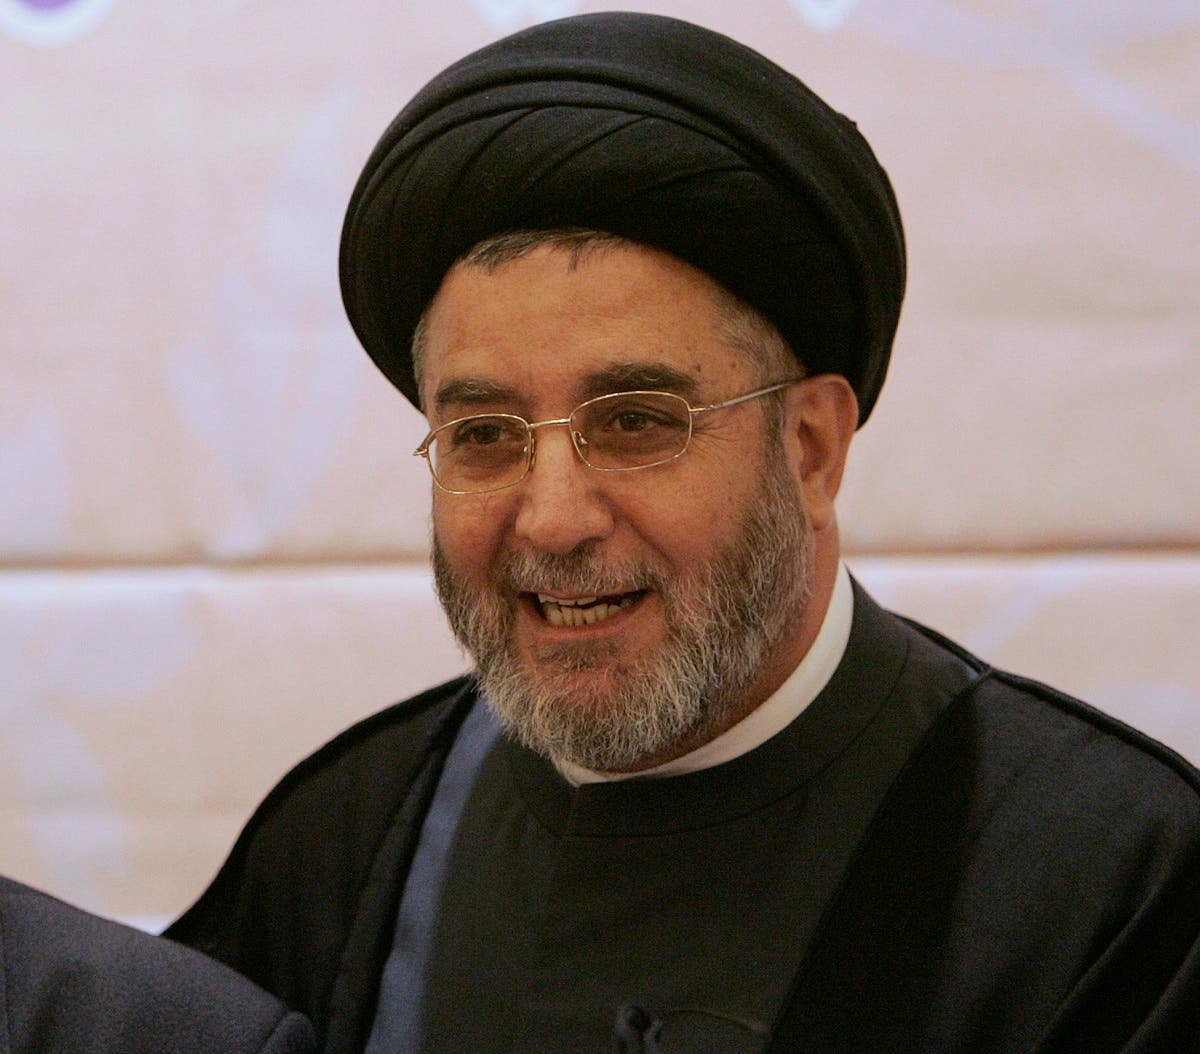 Ibrahim Amin al-Sayyed, head of Hezbollah political bureau pictured. (File photo: AP)